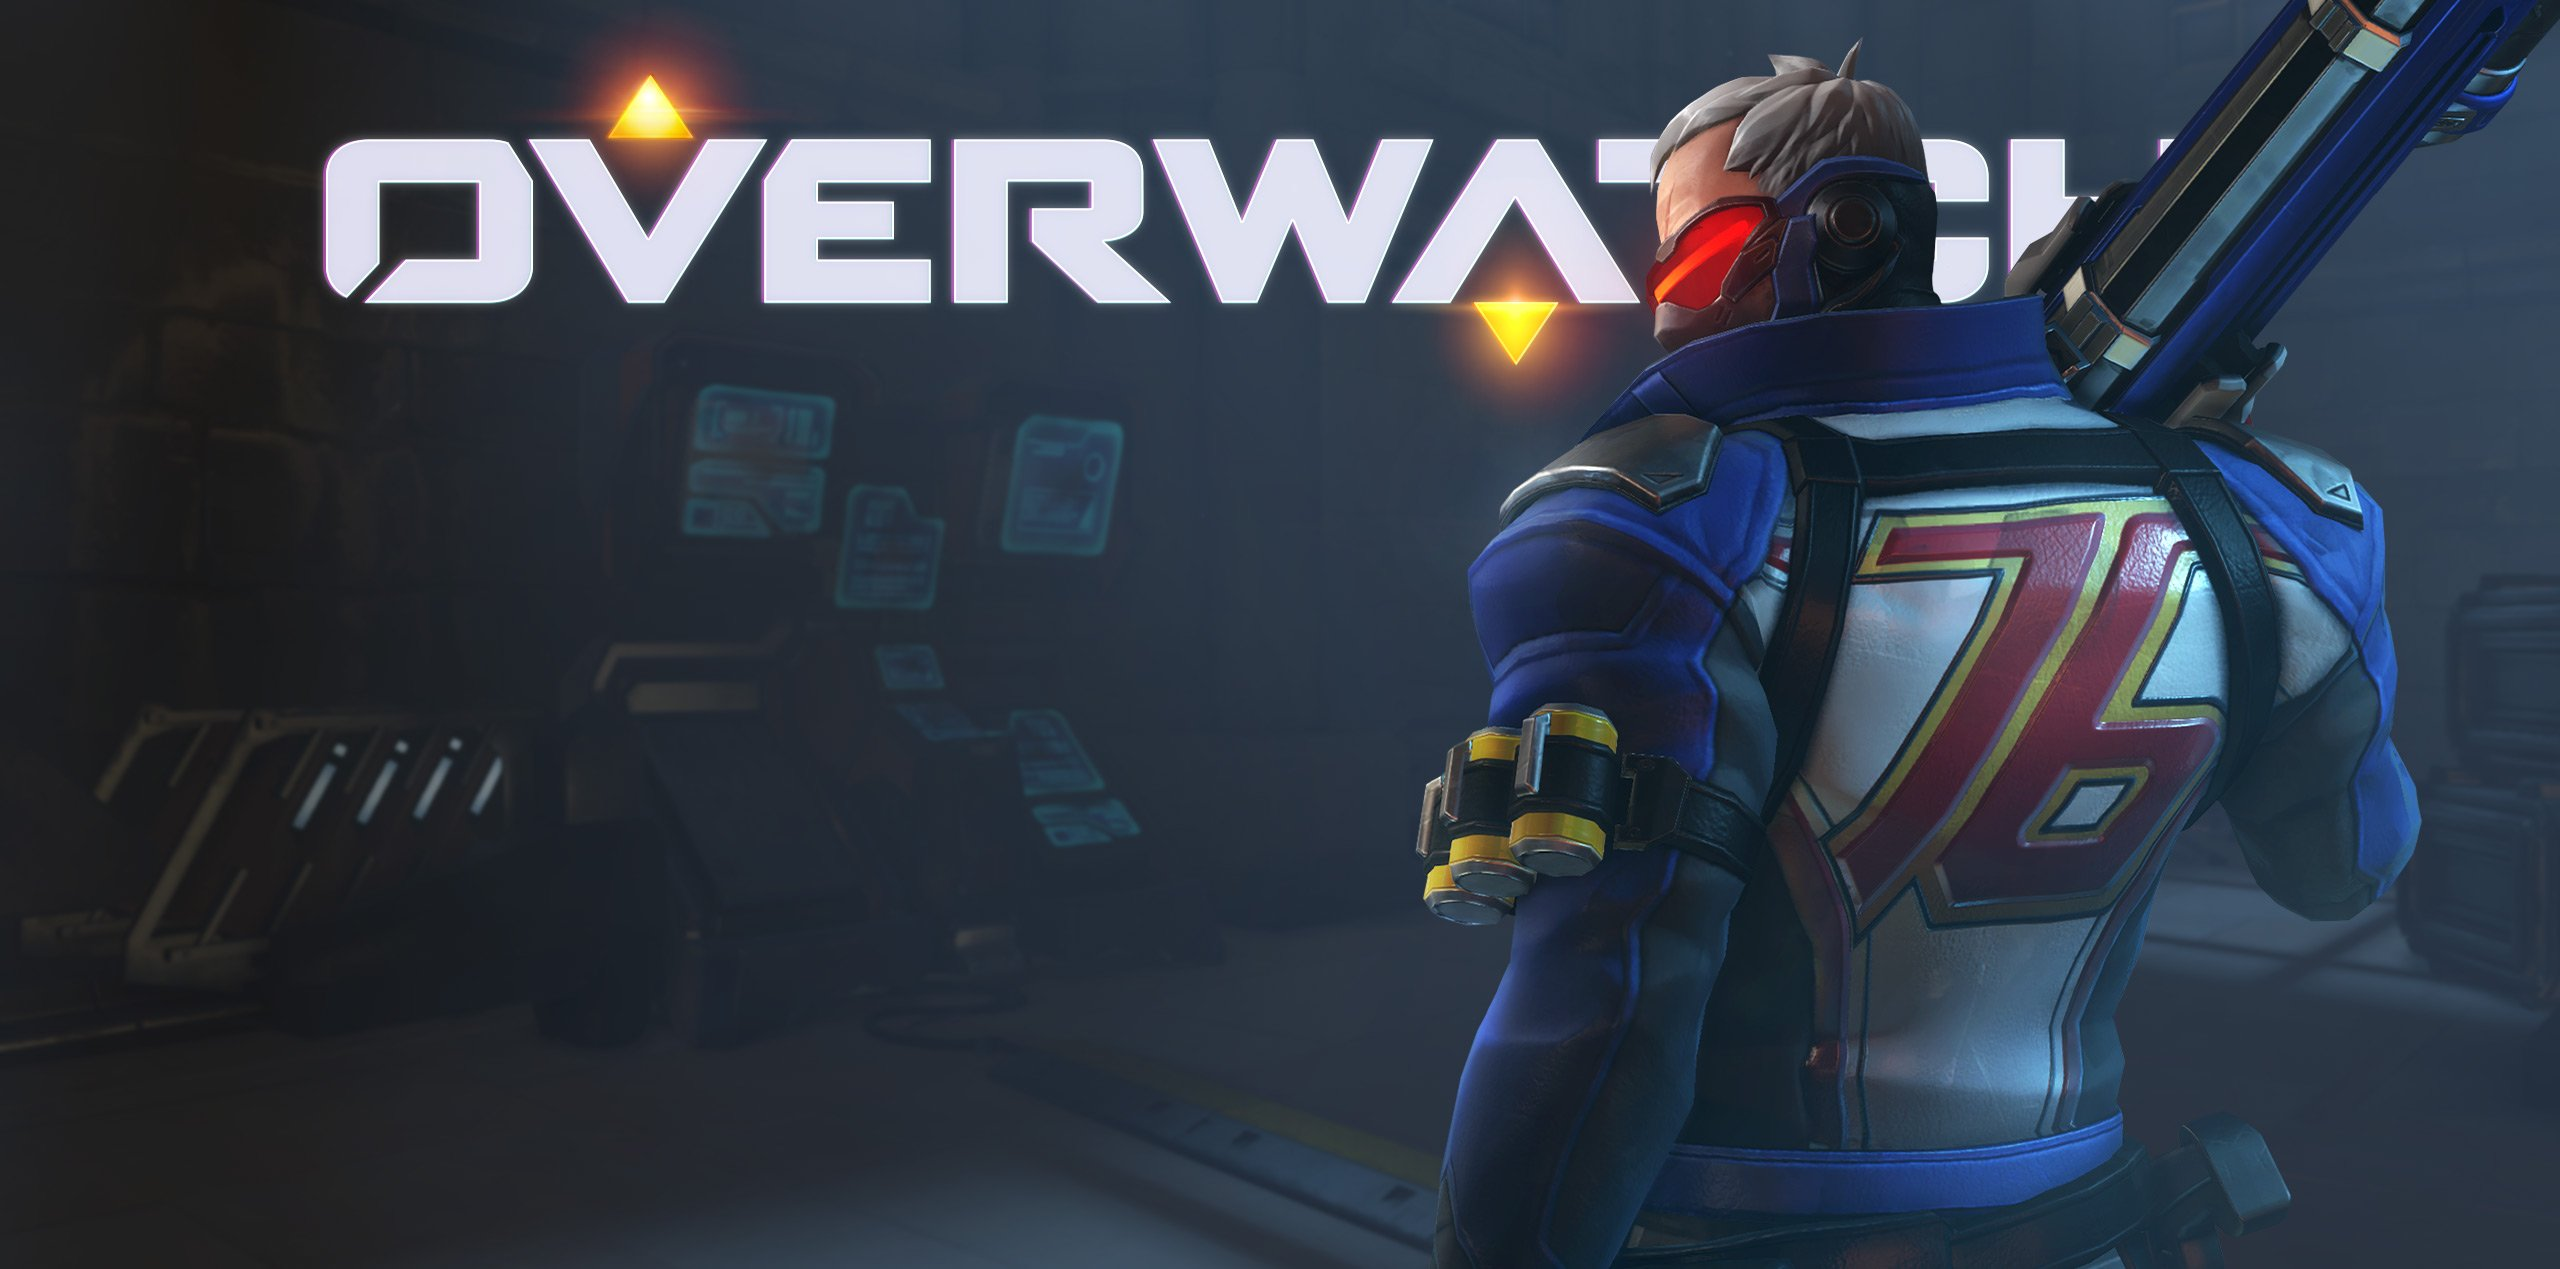 Overwatch Wallpaper Dual Monitor: Overwatch Dual Monitor Wallpaper